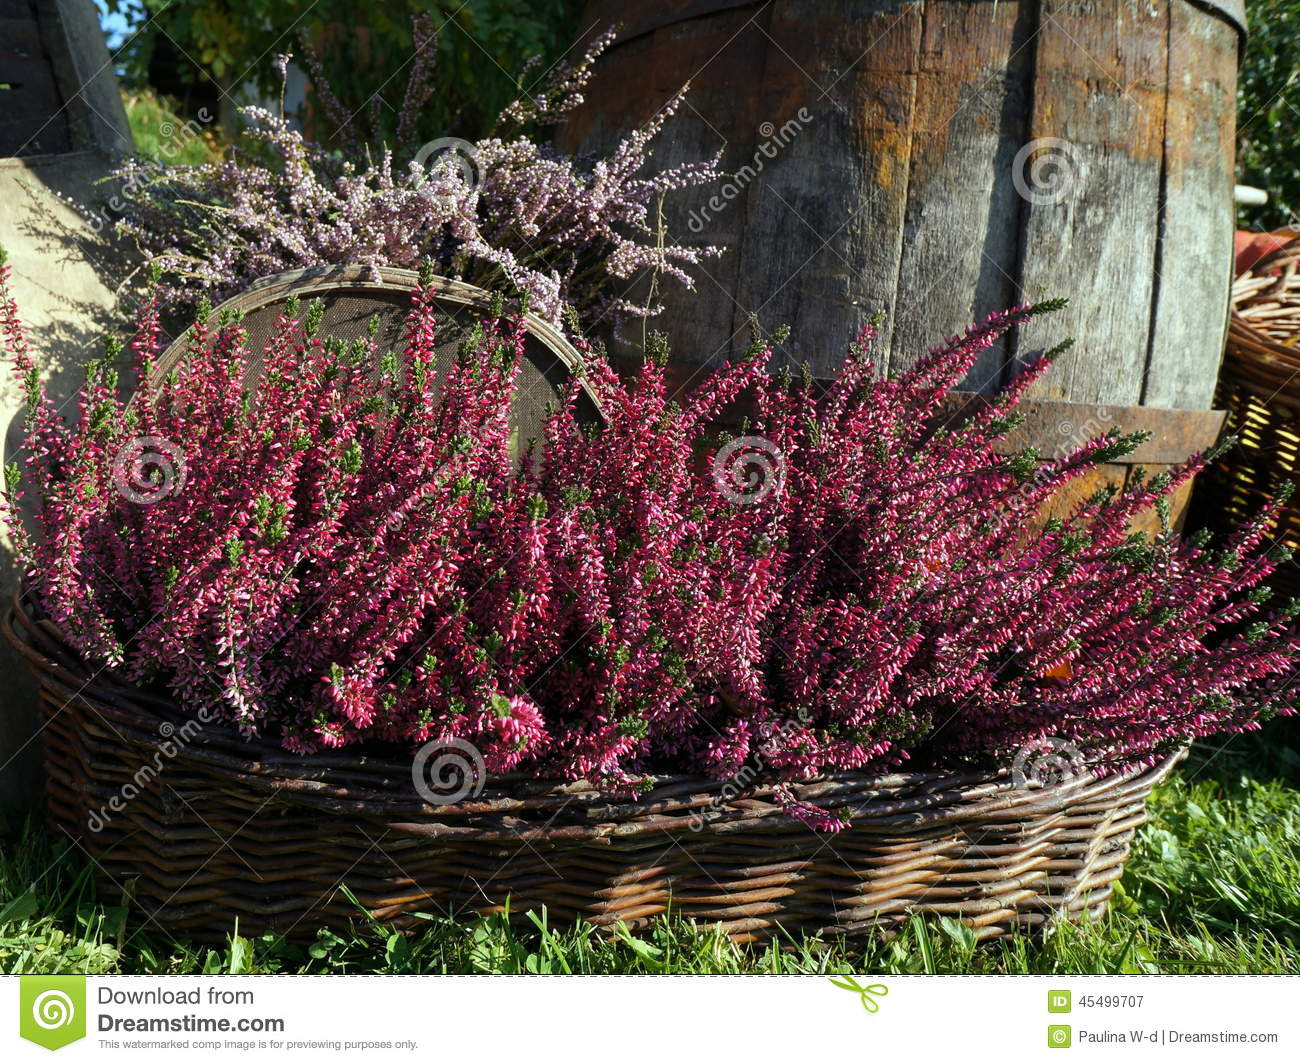 Autumn decoration of purple heather, ling flowers